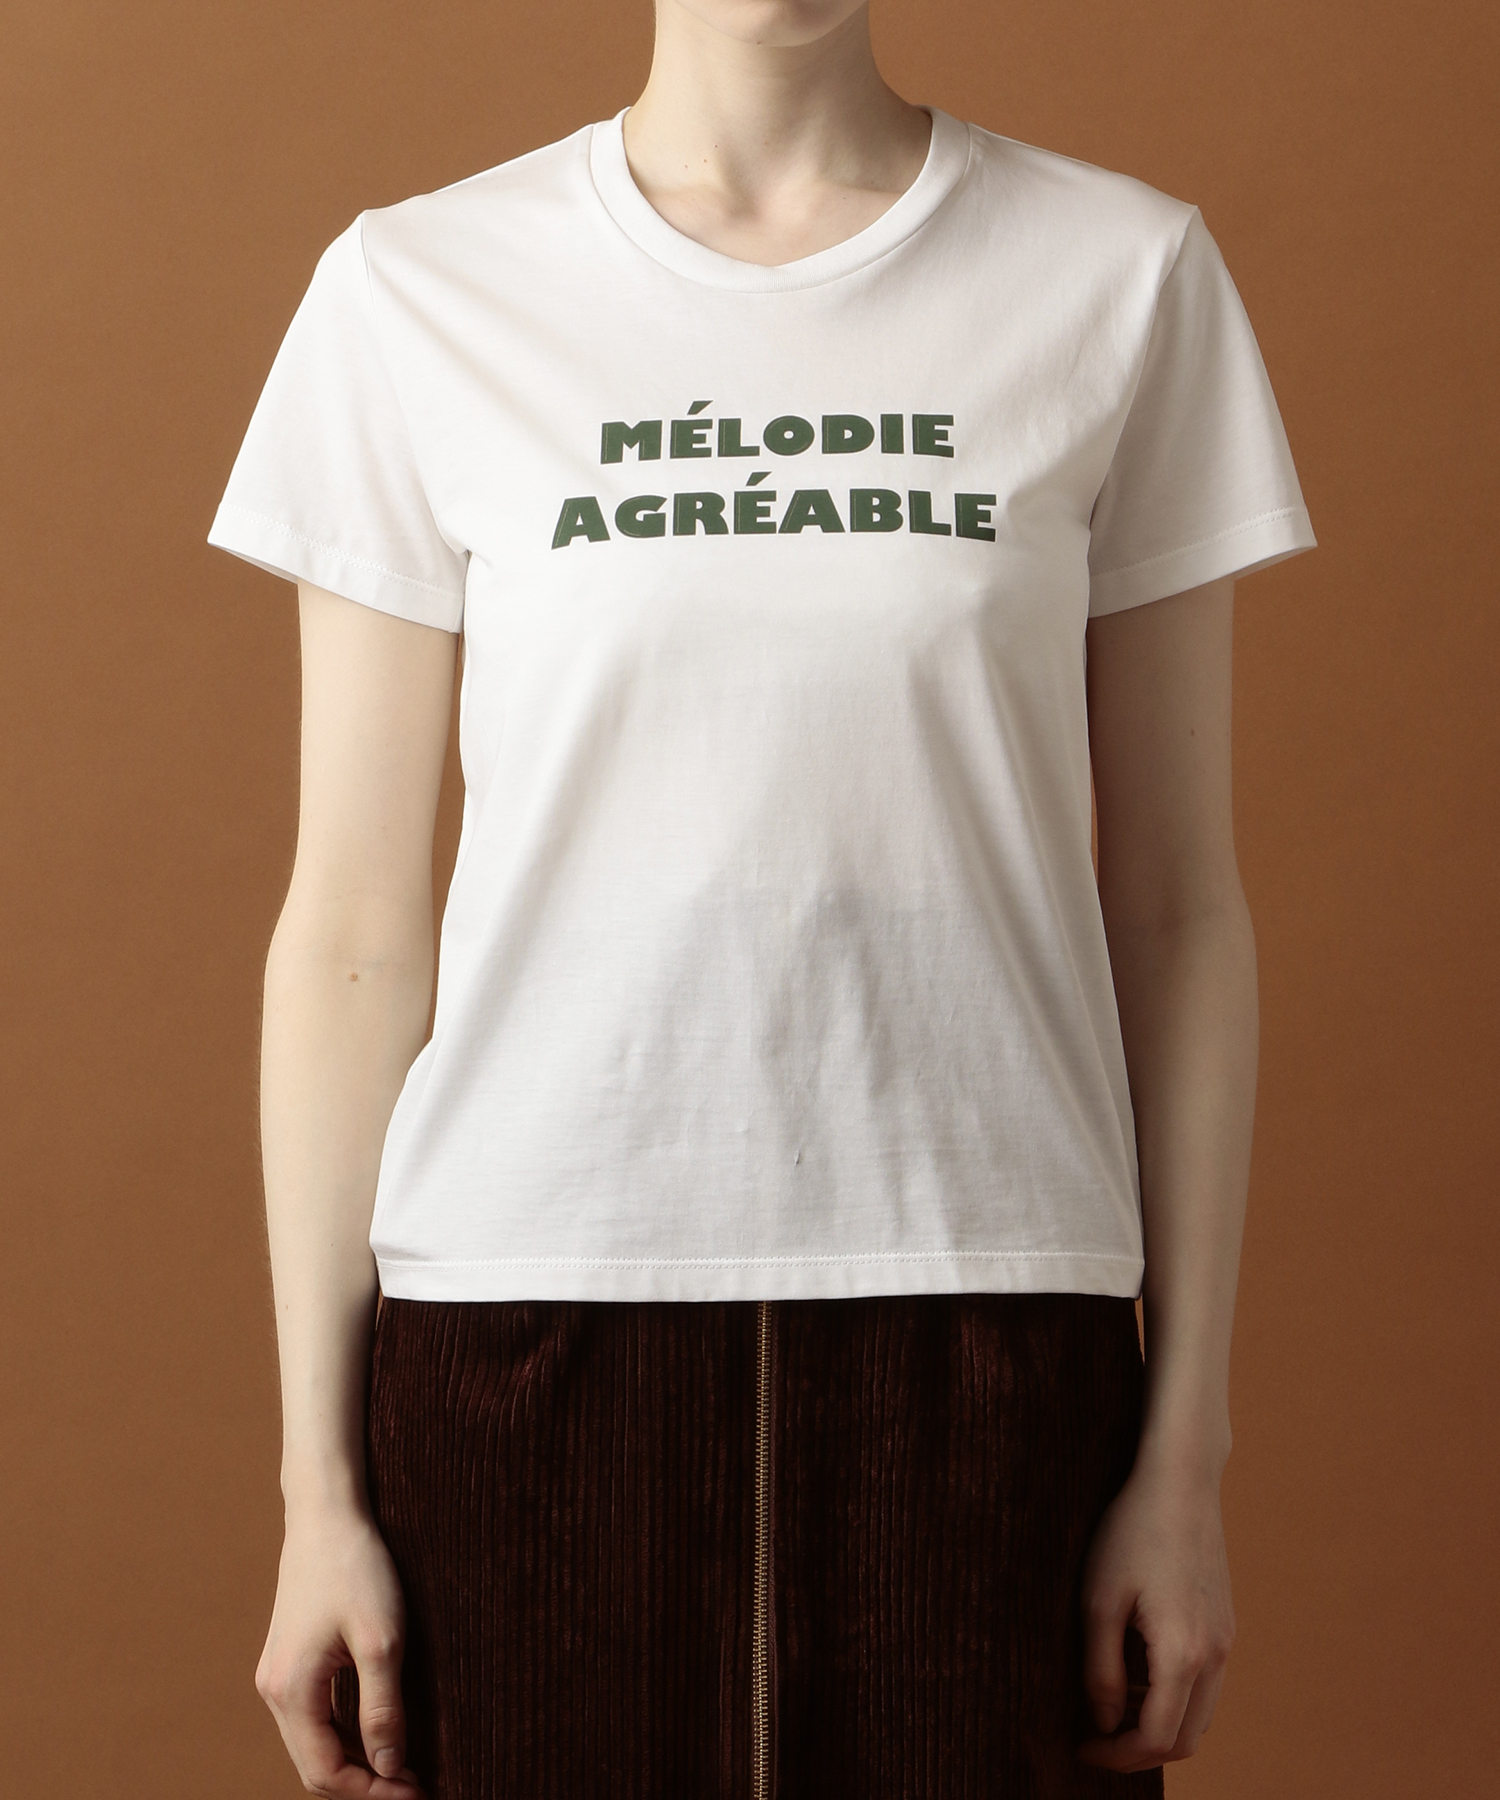 【ar 2019年10月号掲載】MELODIE AGREABLE Tシャツ